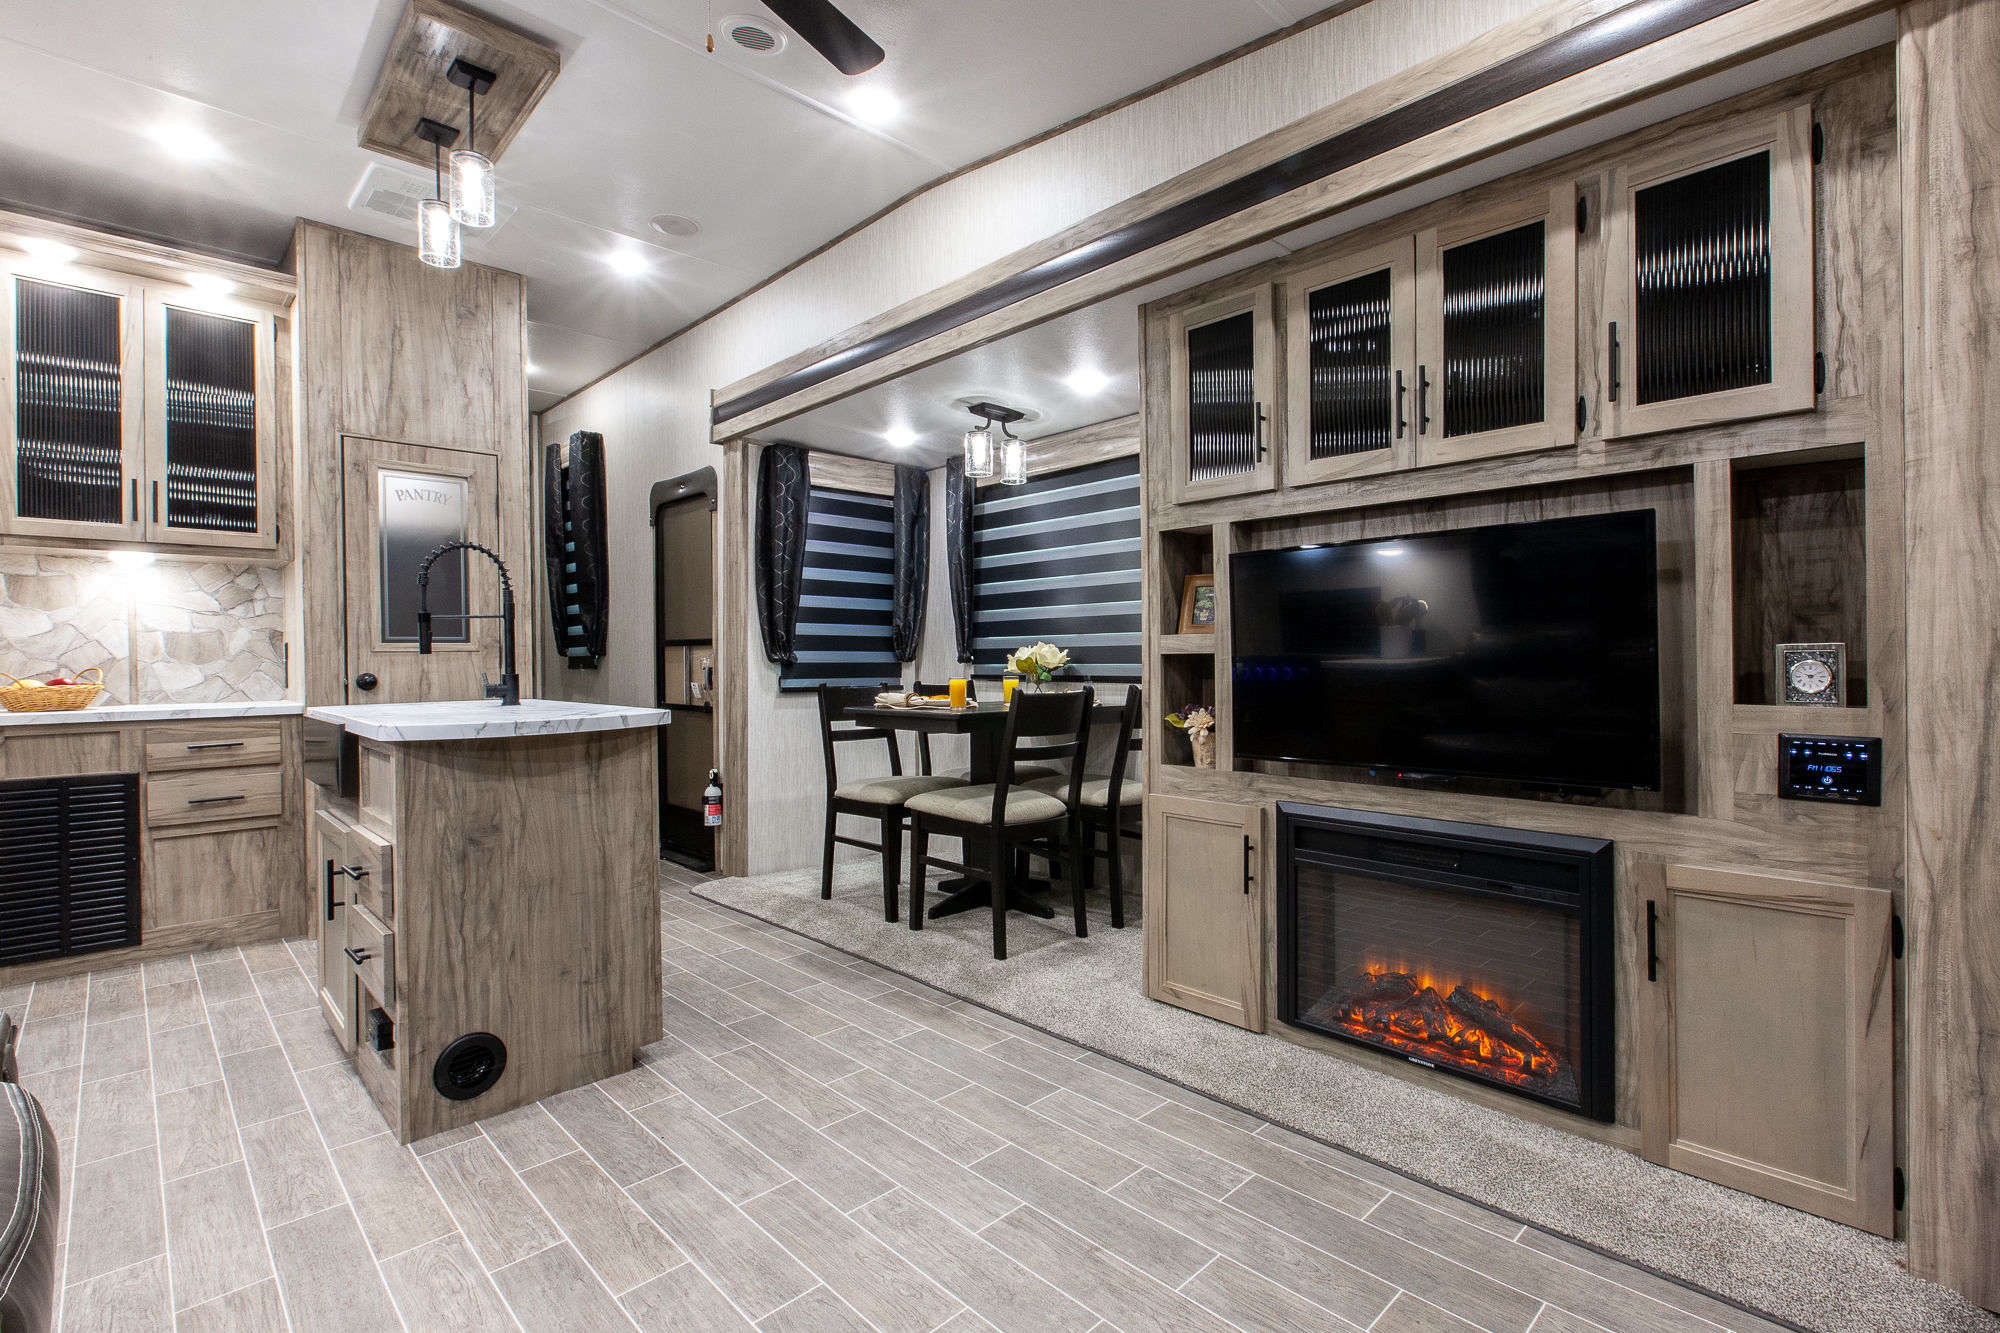 2021 Forest River Cherokee Arctic Wolf 3550SUITE Fifth Wheel Interior Image